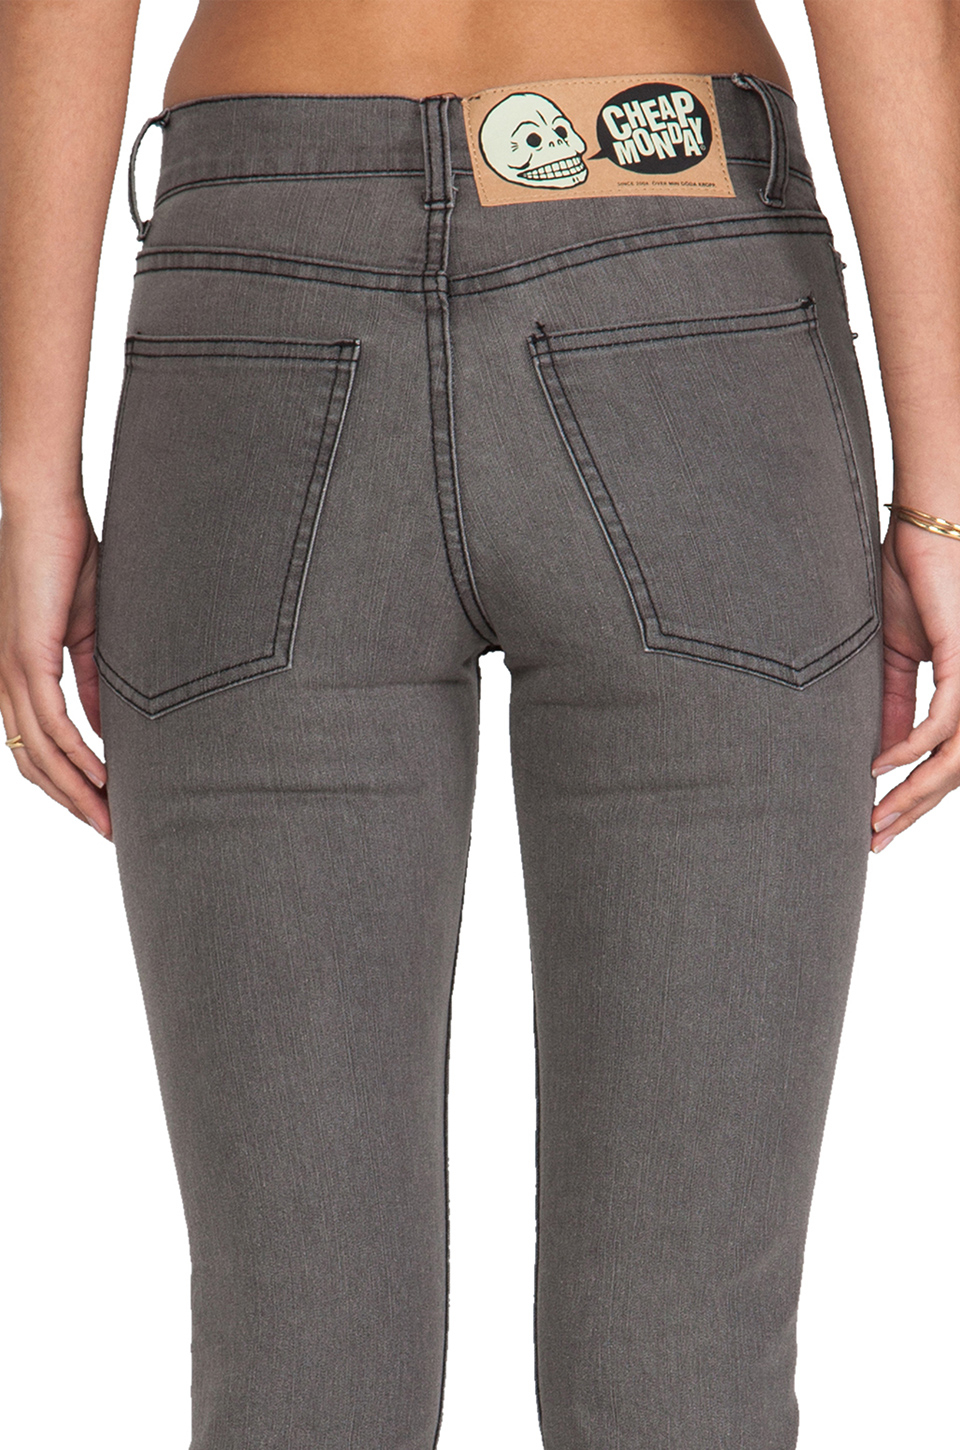 lyst cheap monday tight jeans in gray. Black Bedroom Furniture Sets. Home Design Ideas